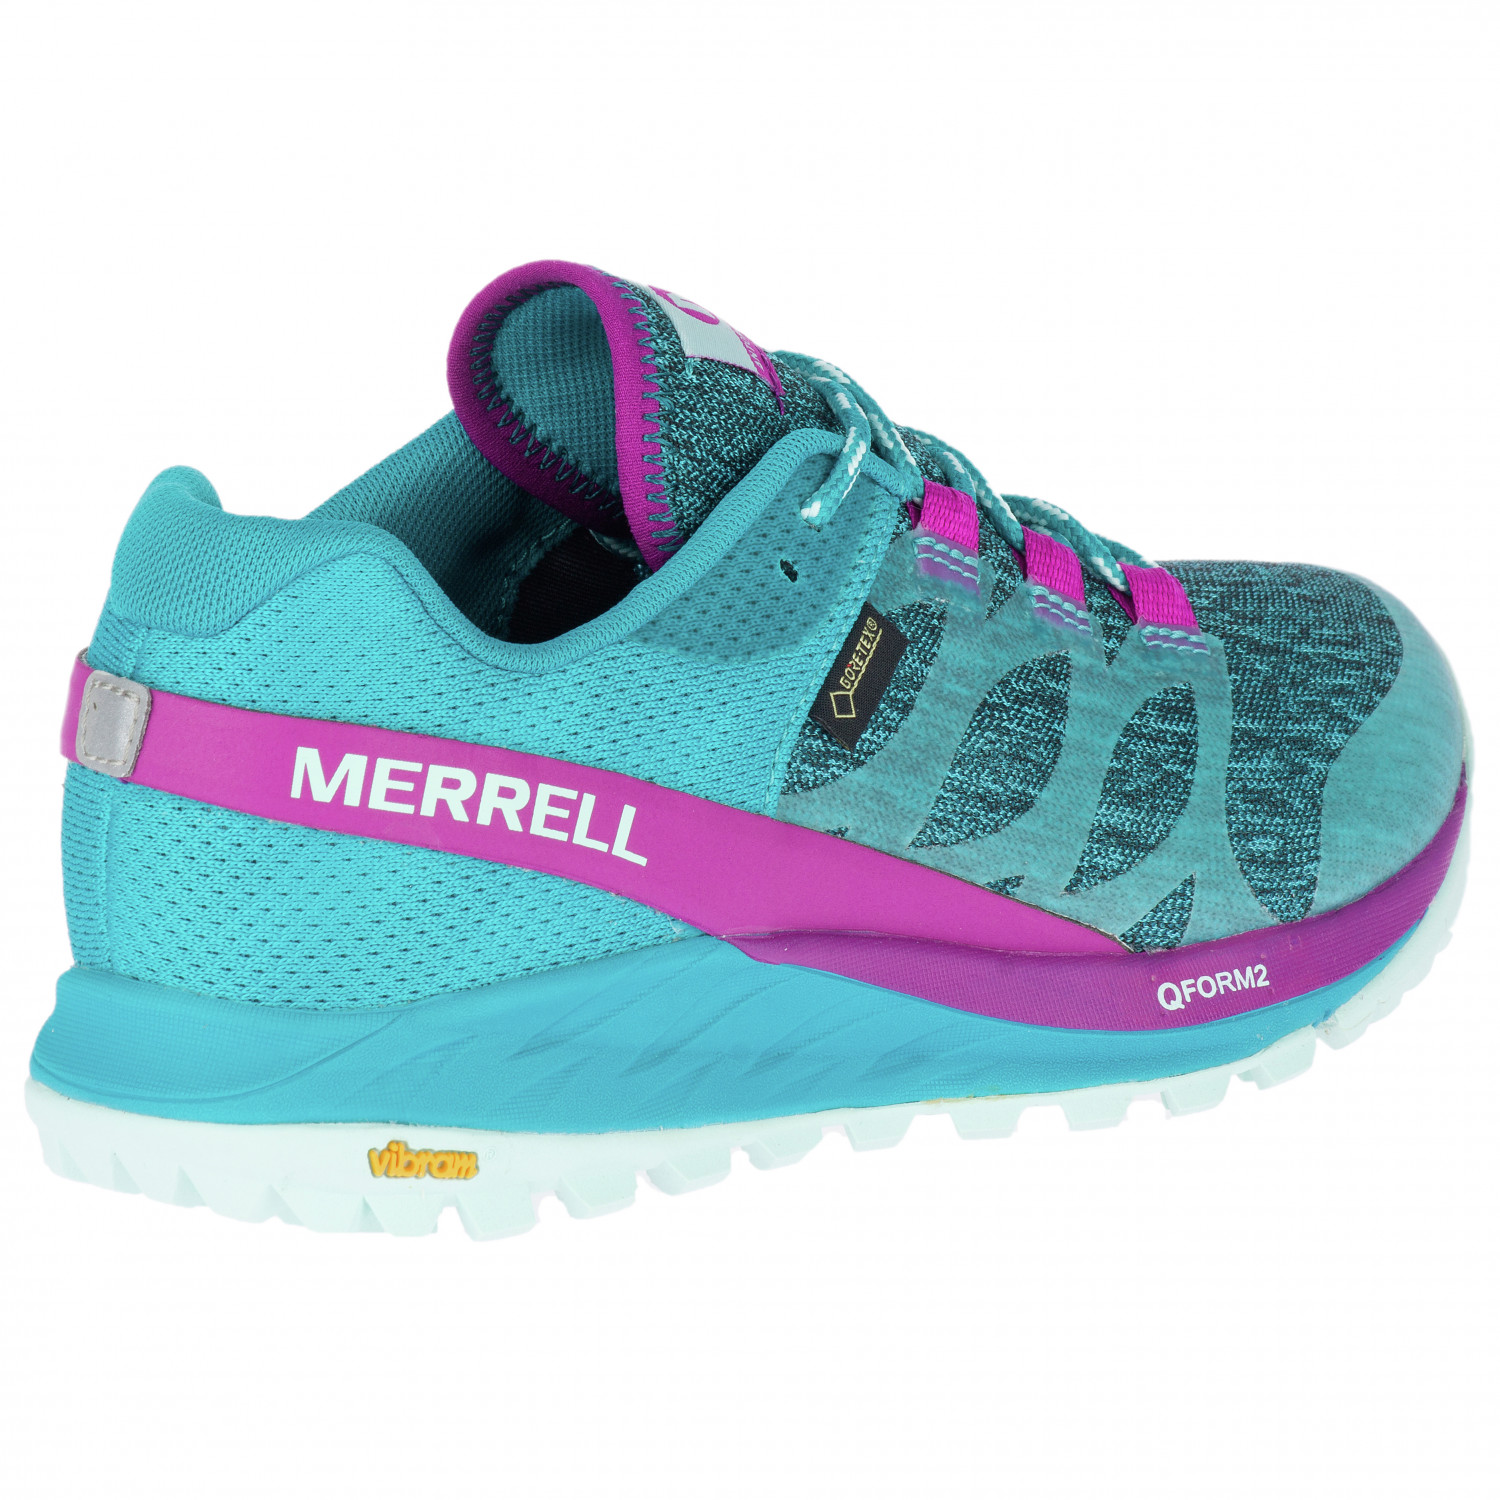 merrell womens antora gore-tex drag along functioning shoes